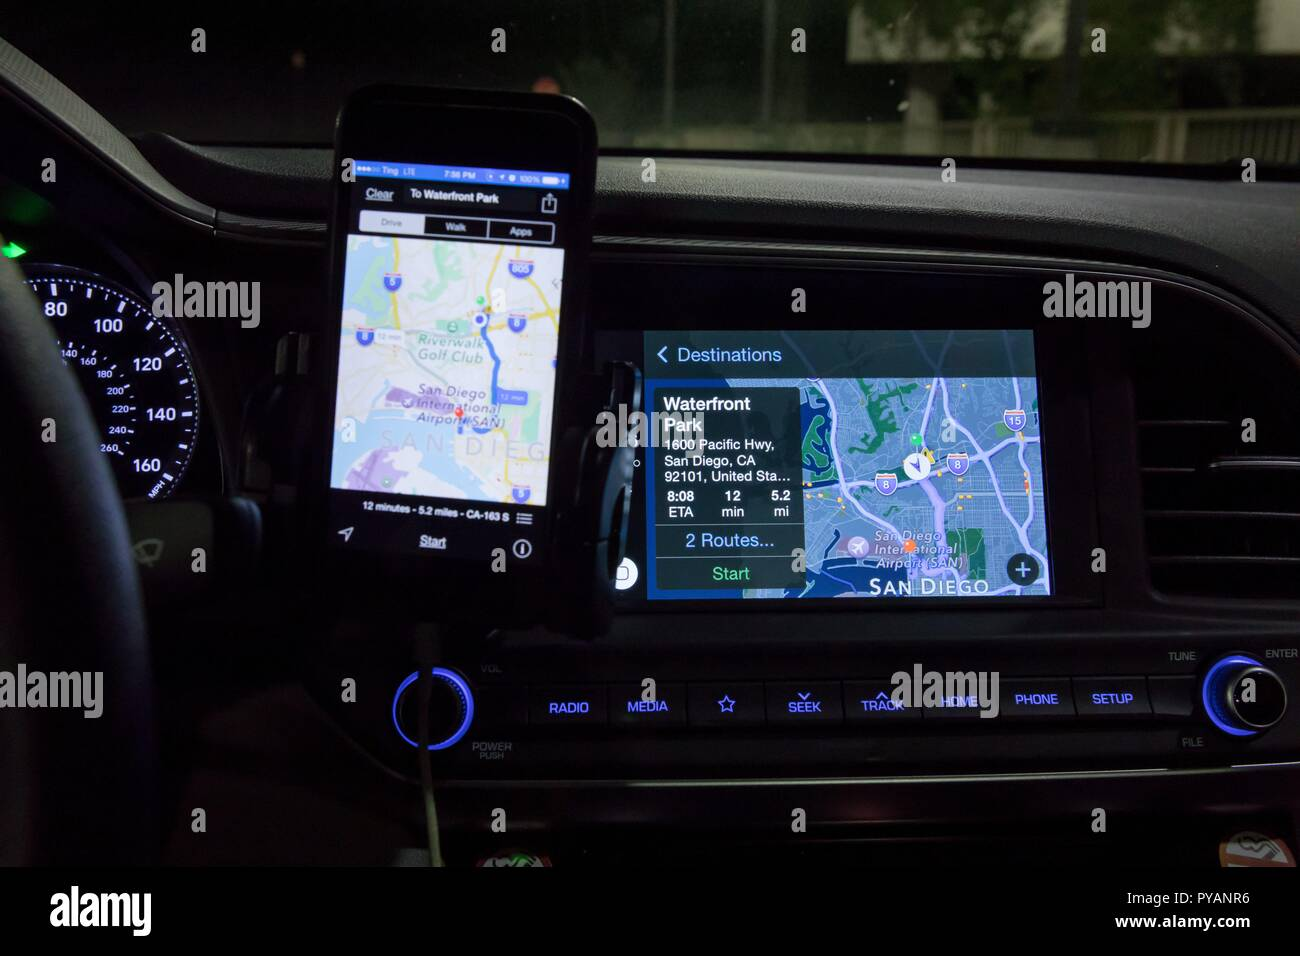 Apple's CarPlay with navigation in a Hyundai, in September 2018